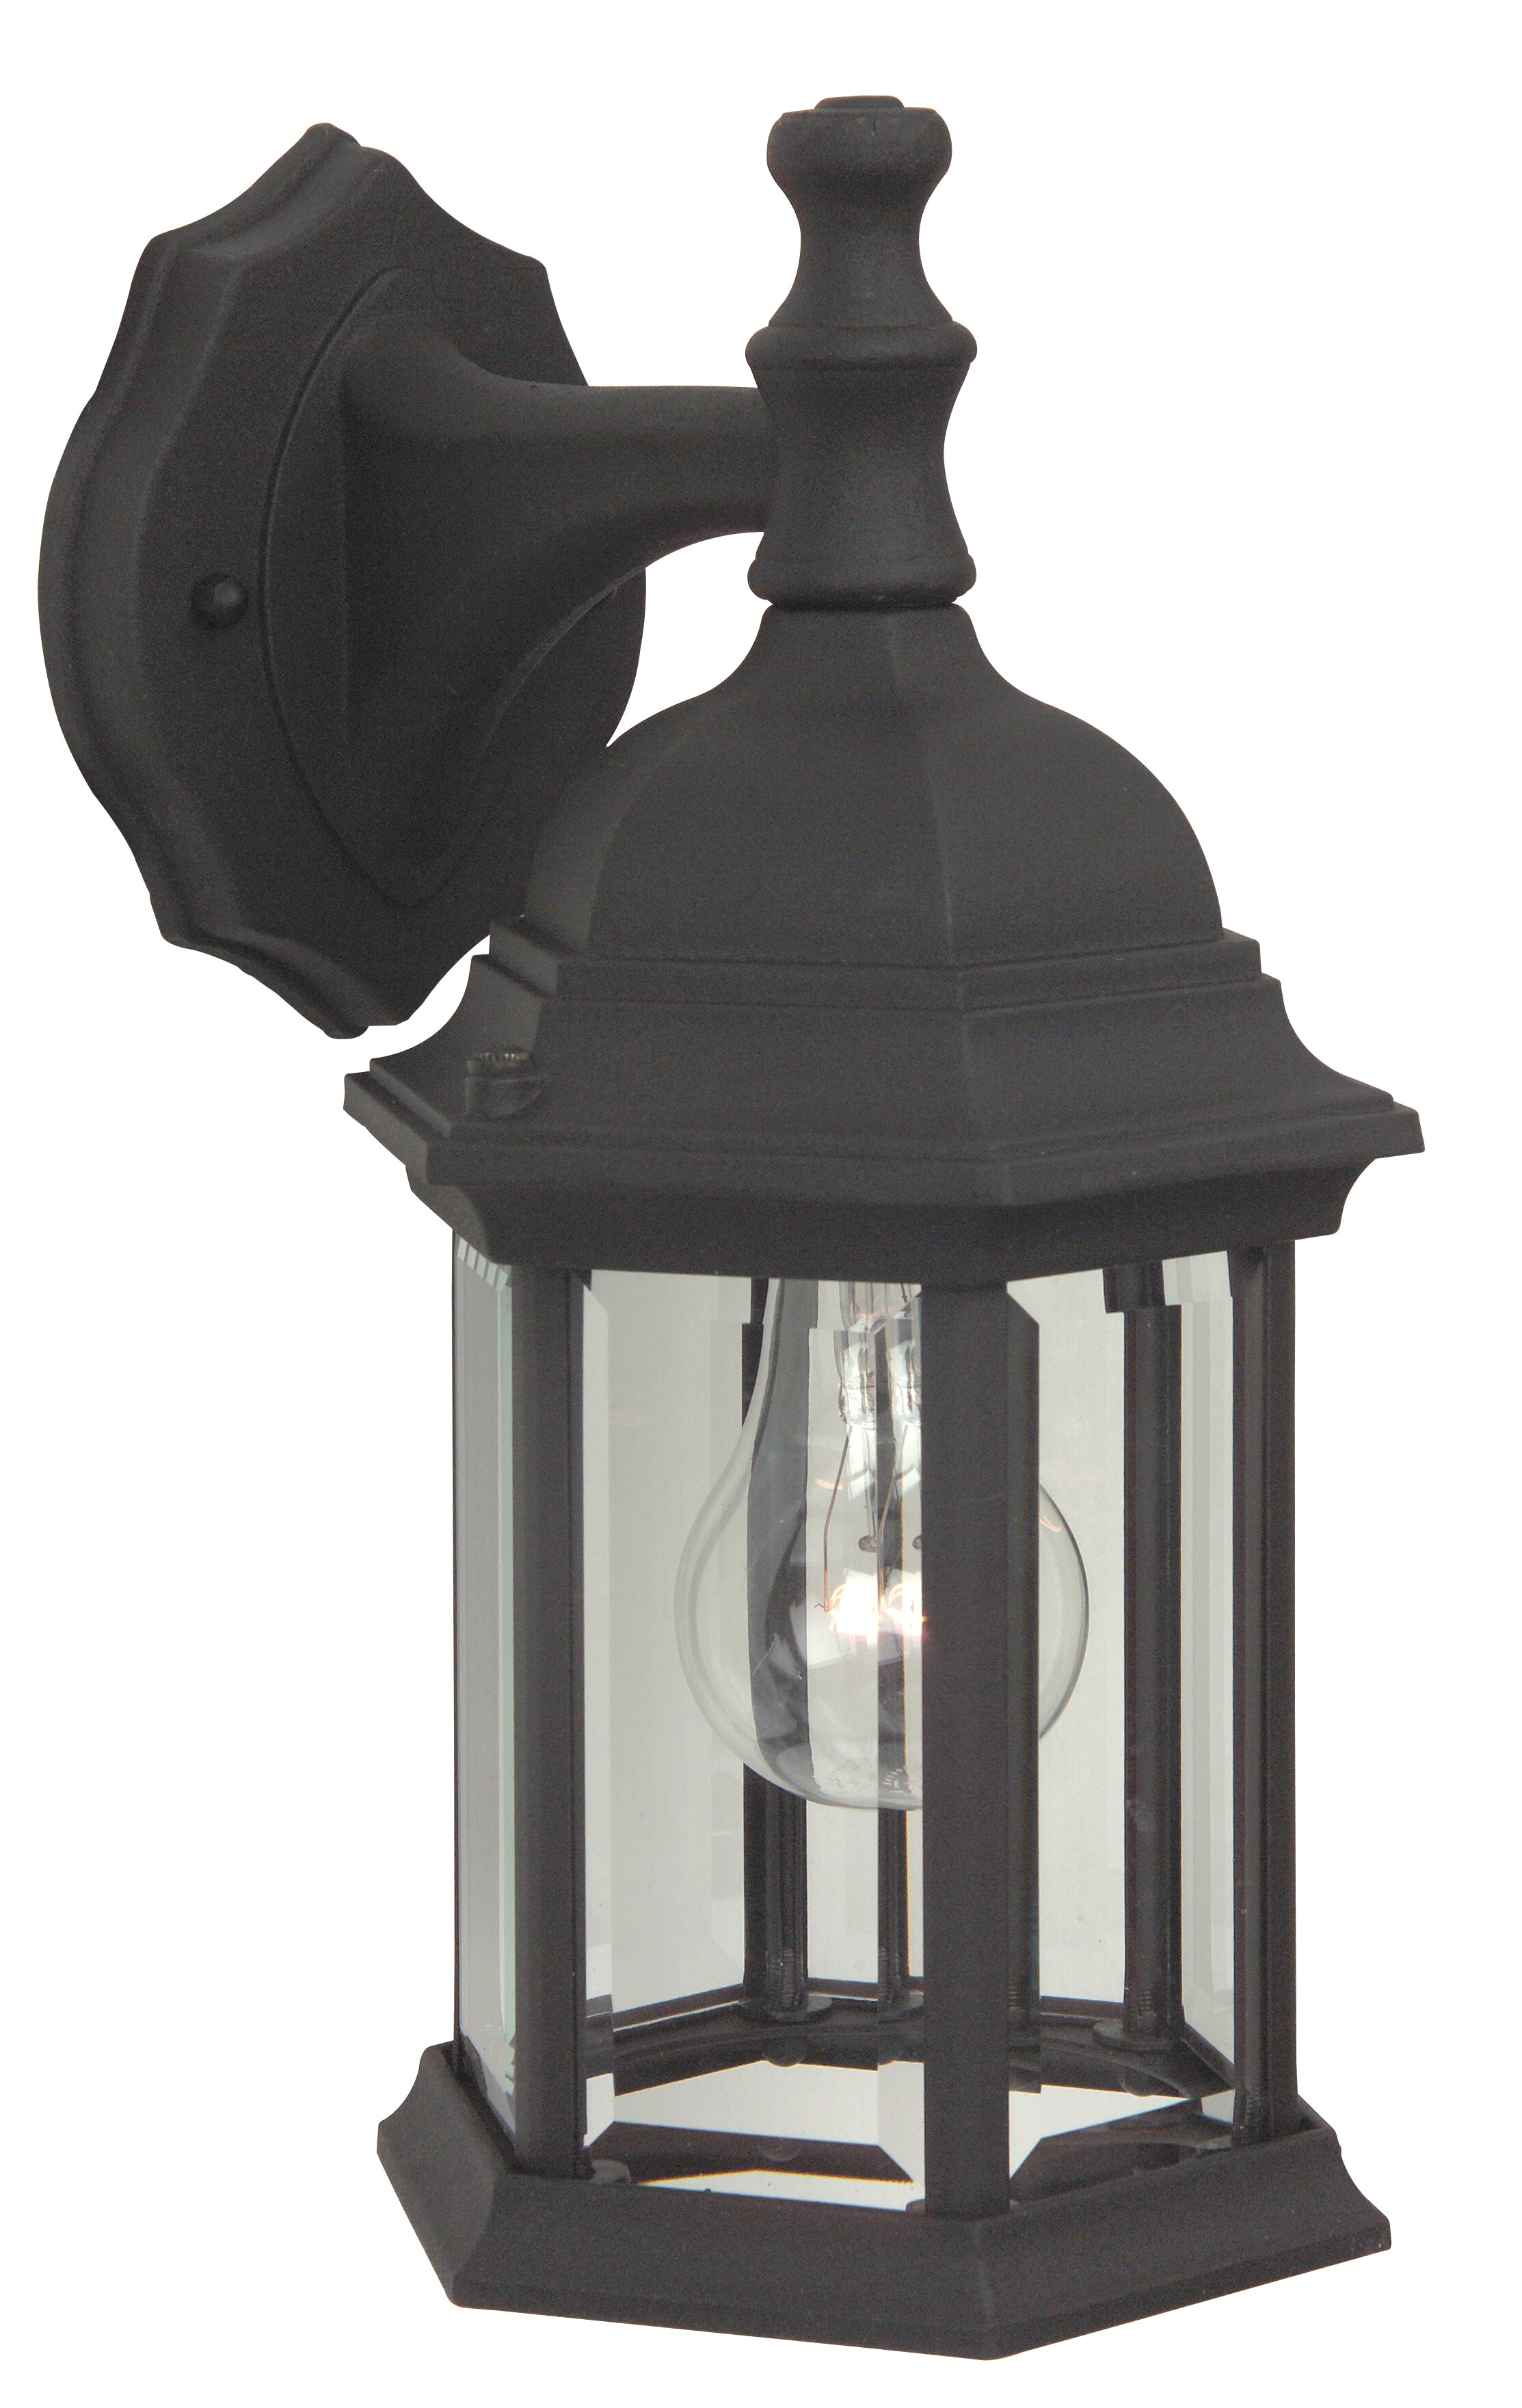 HAMPTON BAY 1-Light Matte Black Outdoor Jelly-Jar Wall Light Weather Resistant